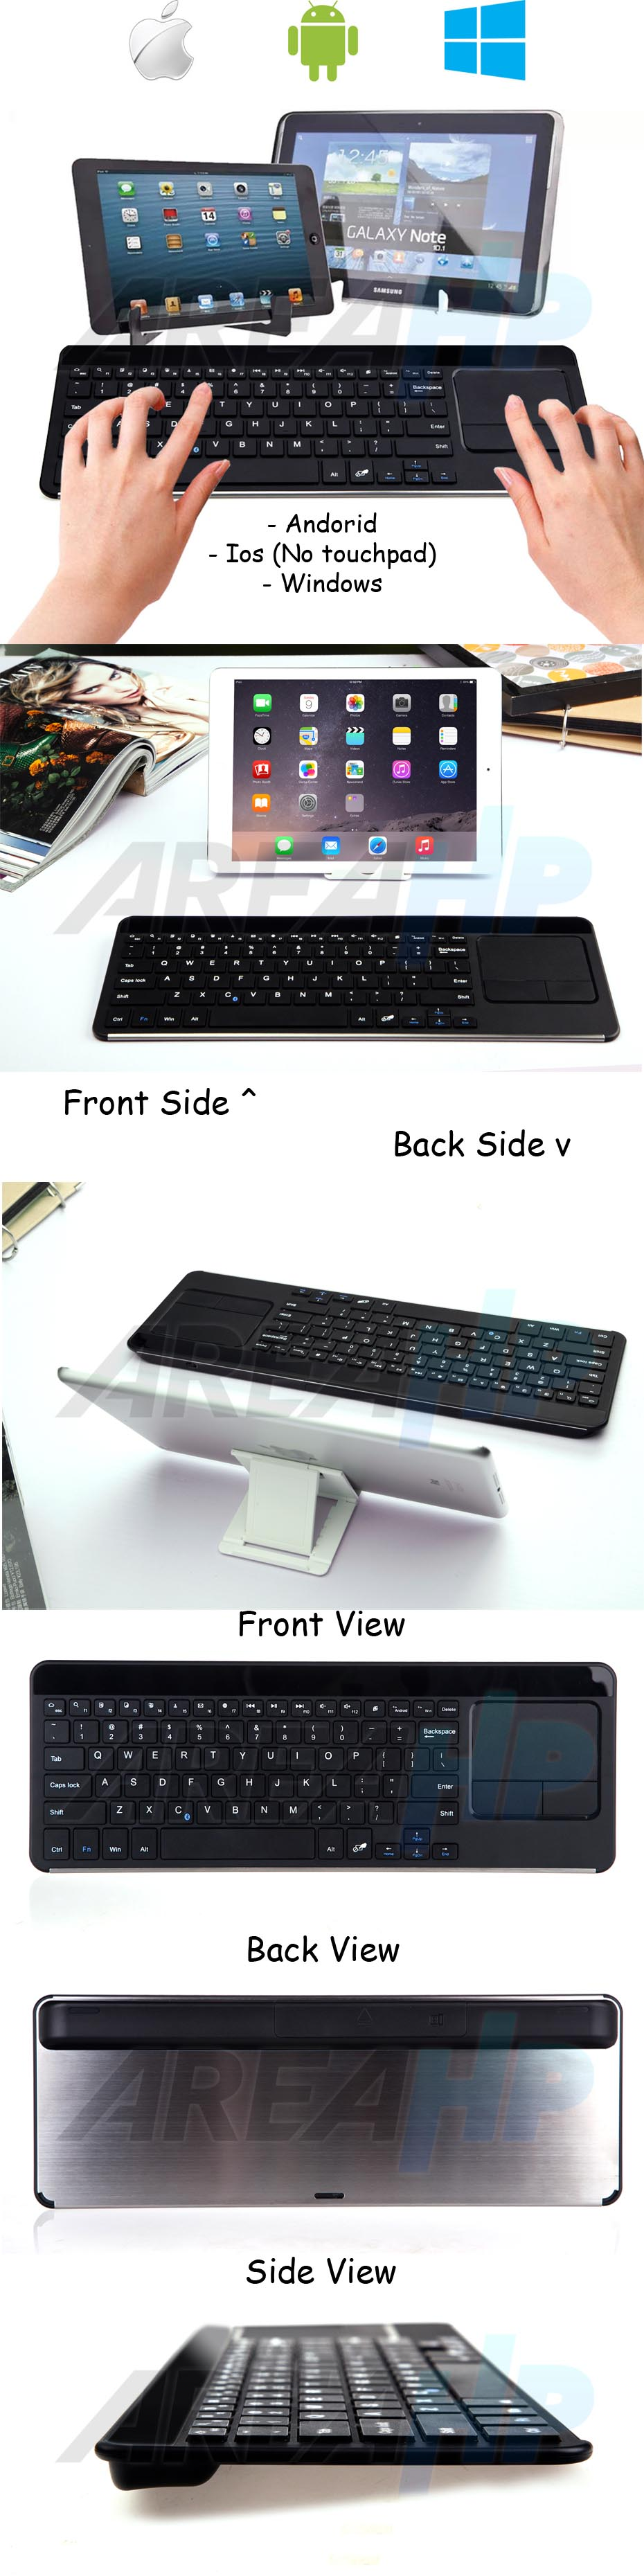 Universal Bluetooth Touchpad Keyboard for All Tablet IOS, Android, Windows Overview Overview